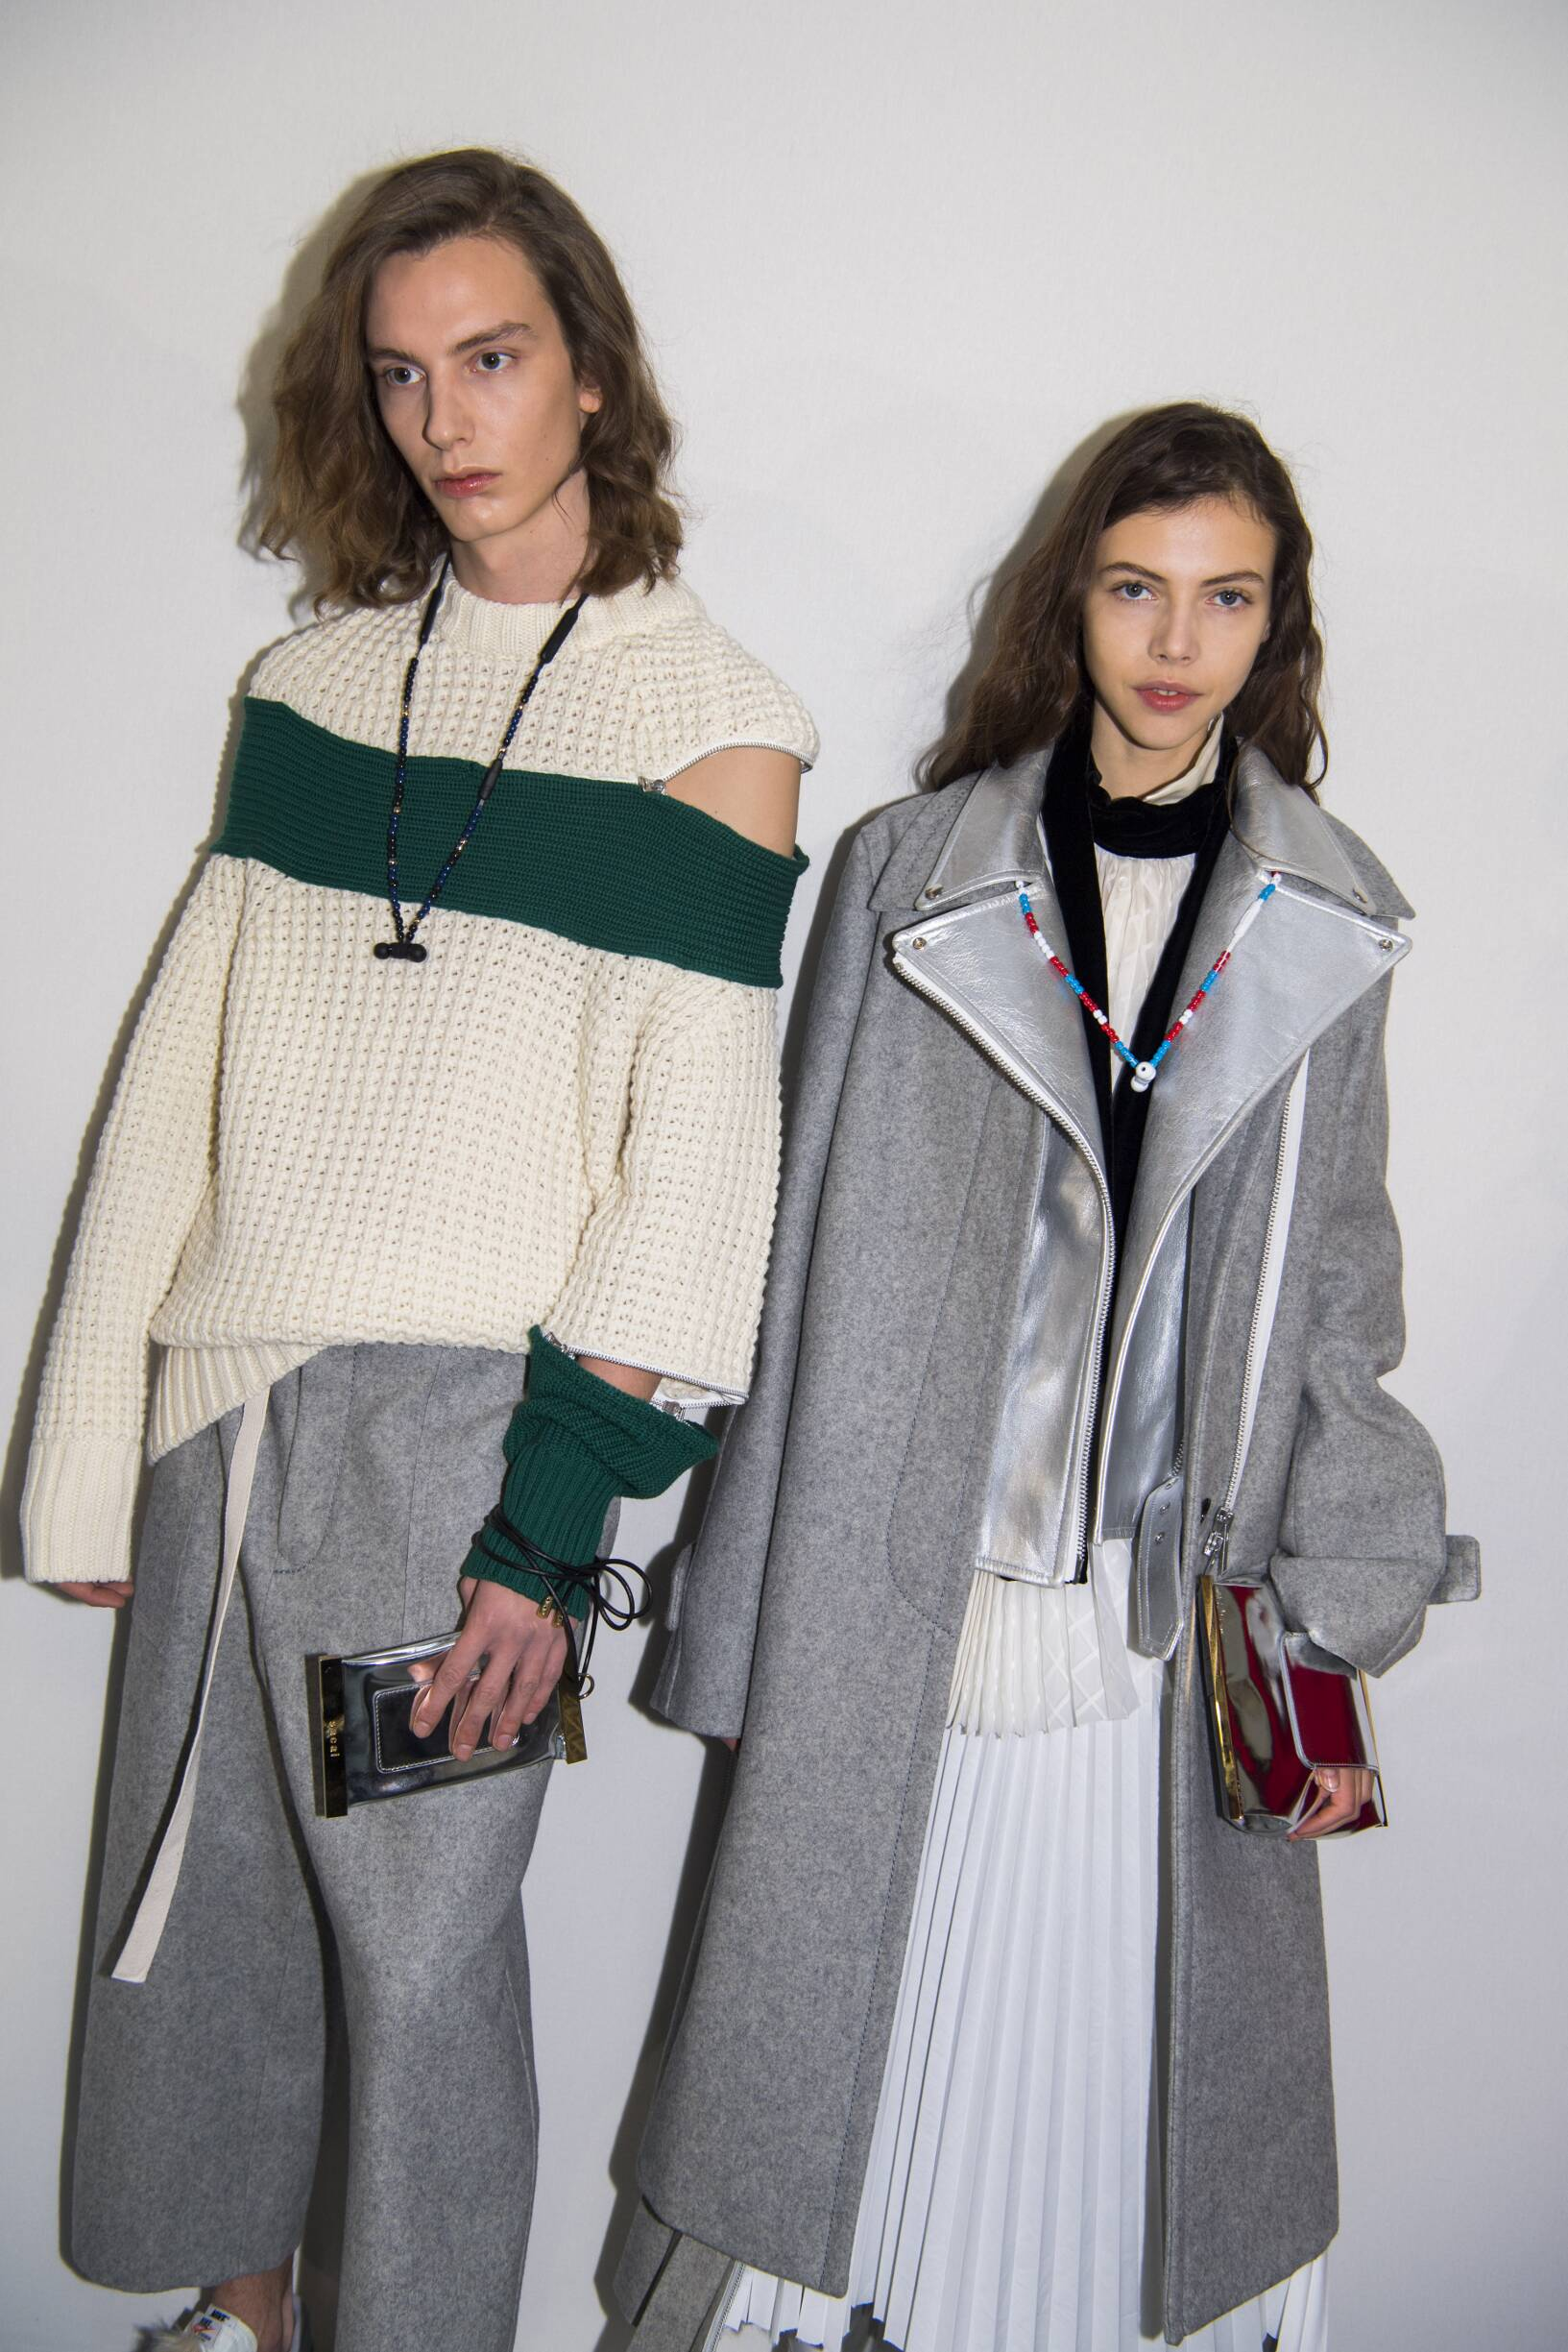 Backstage Sacai Paris Fashion Week Models